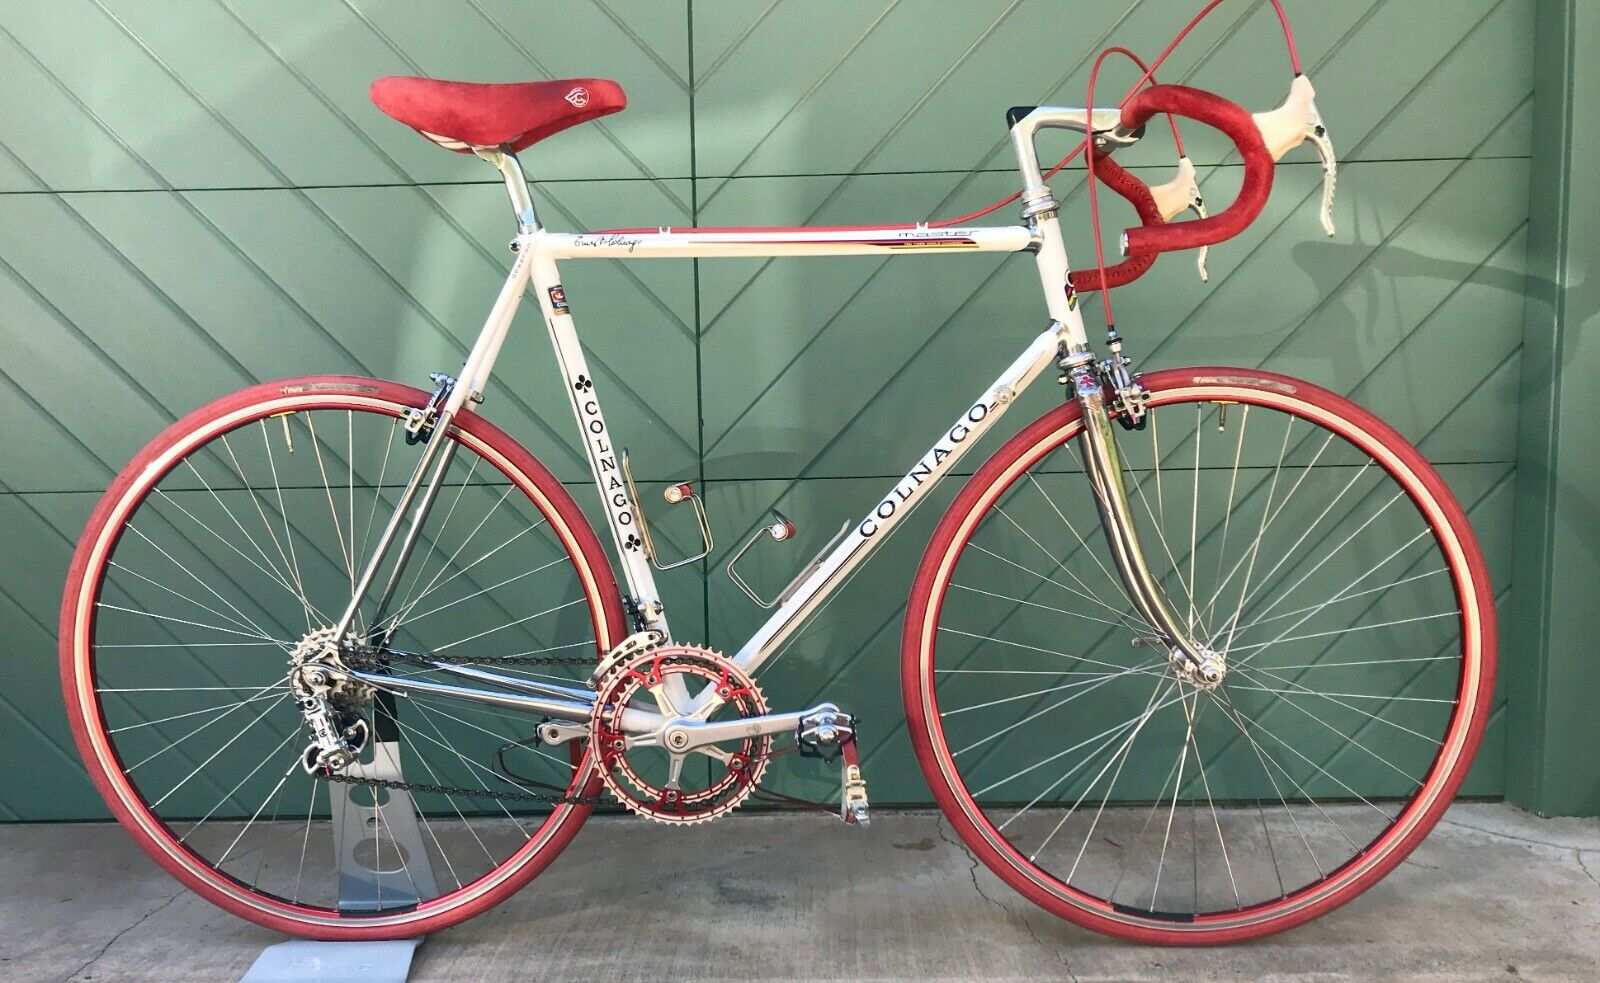 COLNAGO MASTER Vintage Bicycle 58cm 1st Gen Gilco S4-Campagnolo-Pantographed (Used - 6795 USD)